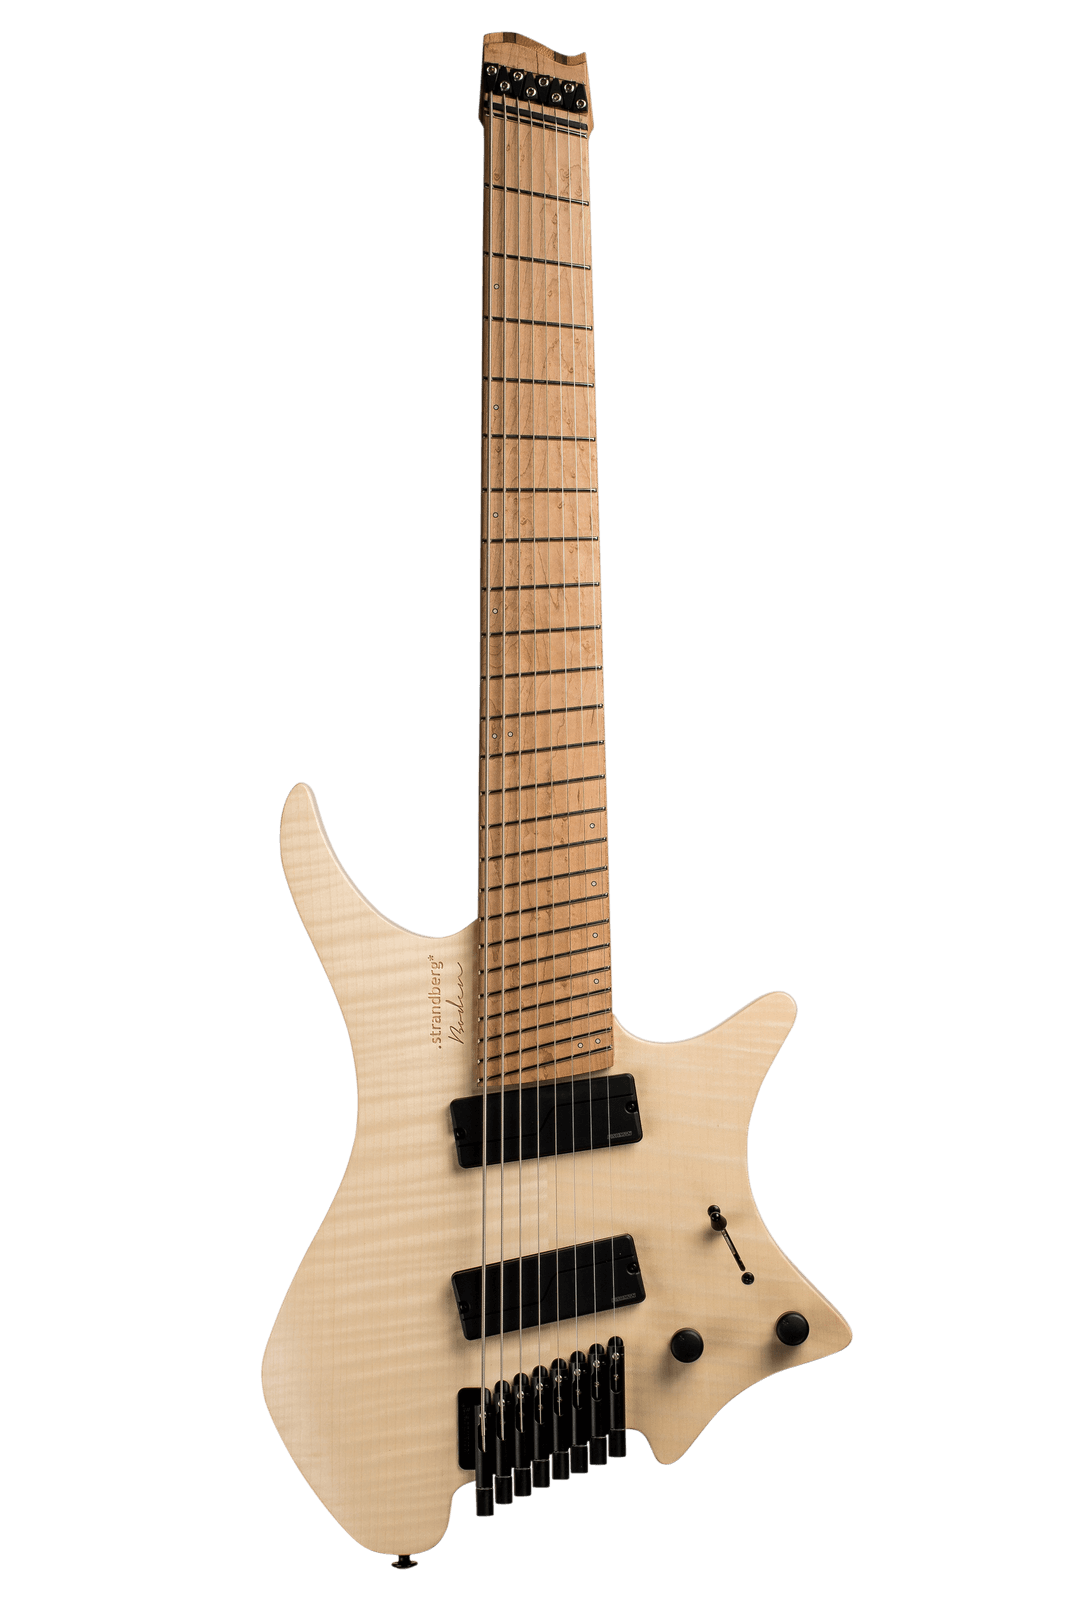 boden original 8 natural strandberg guitars. Black Bedroom Furniture Sets. Home Design Ideas